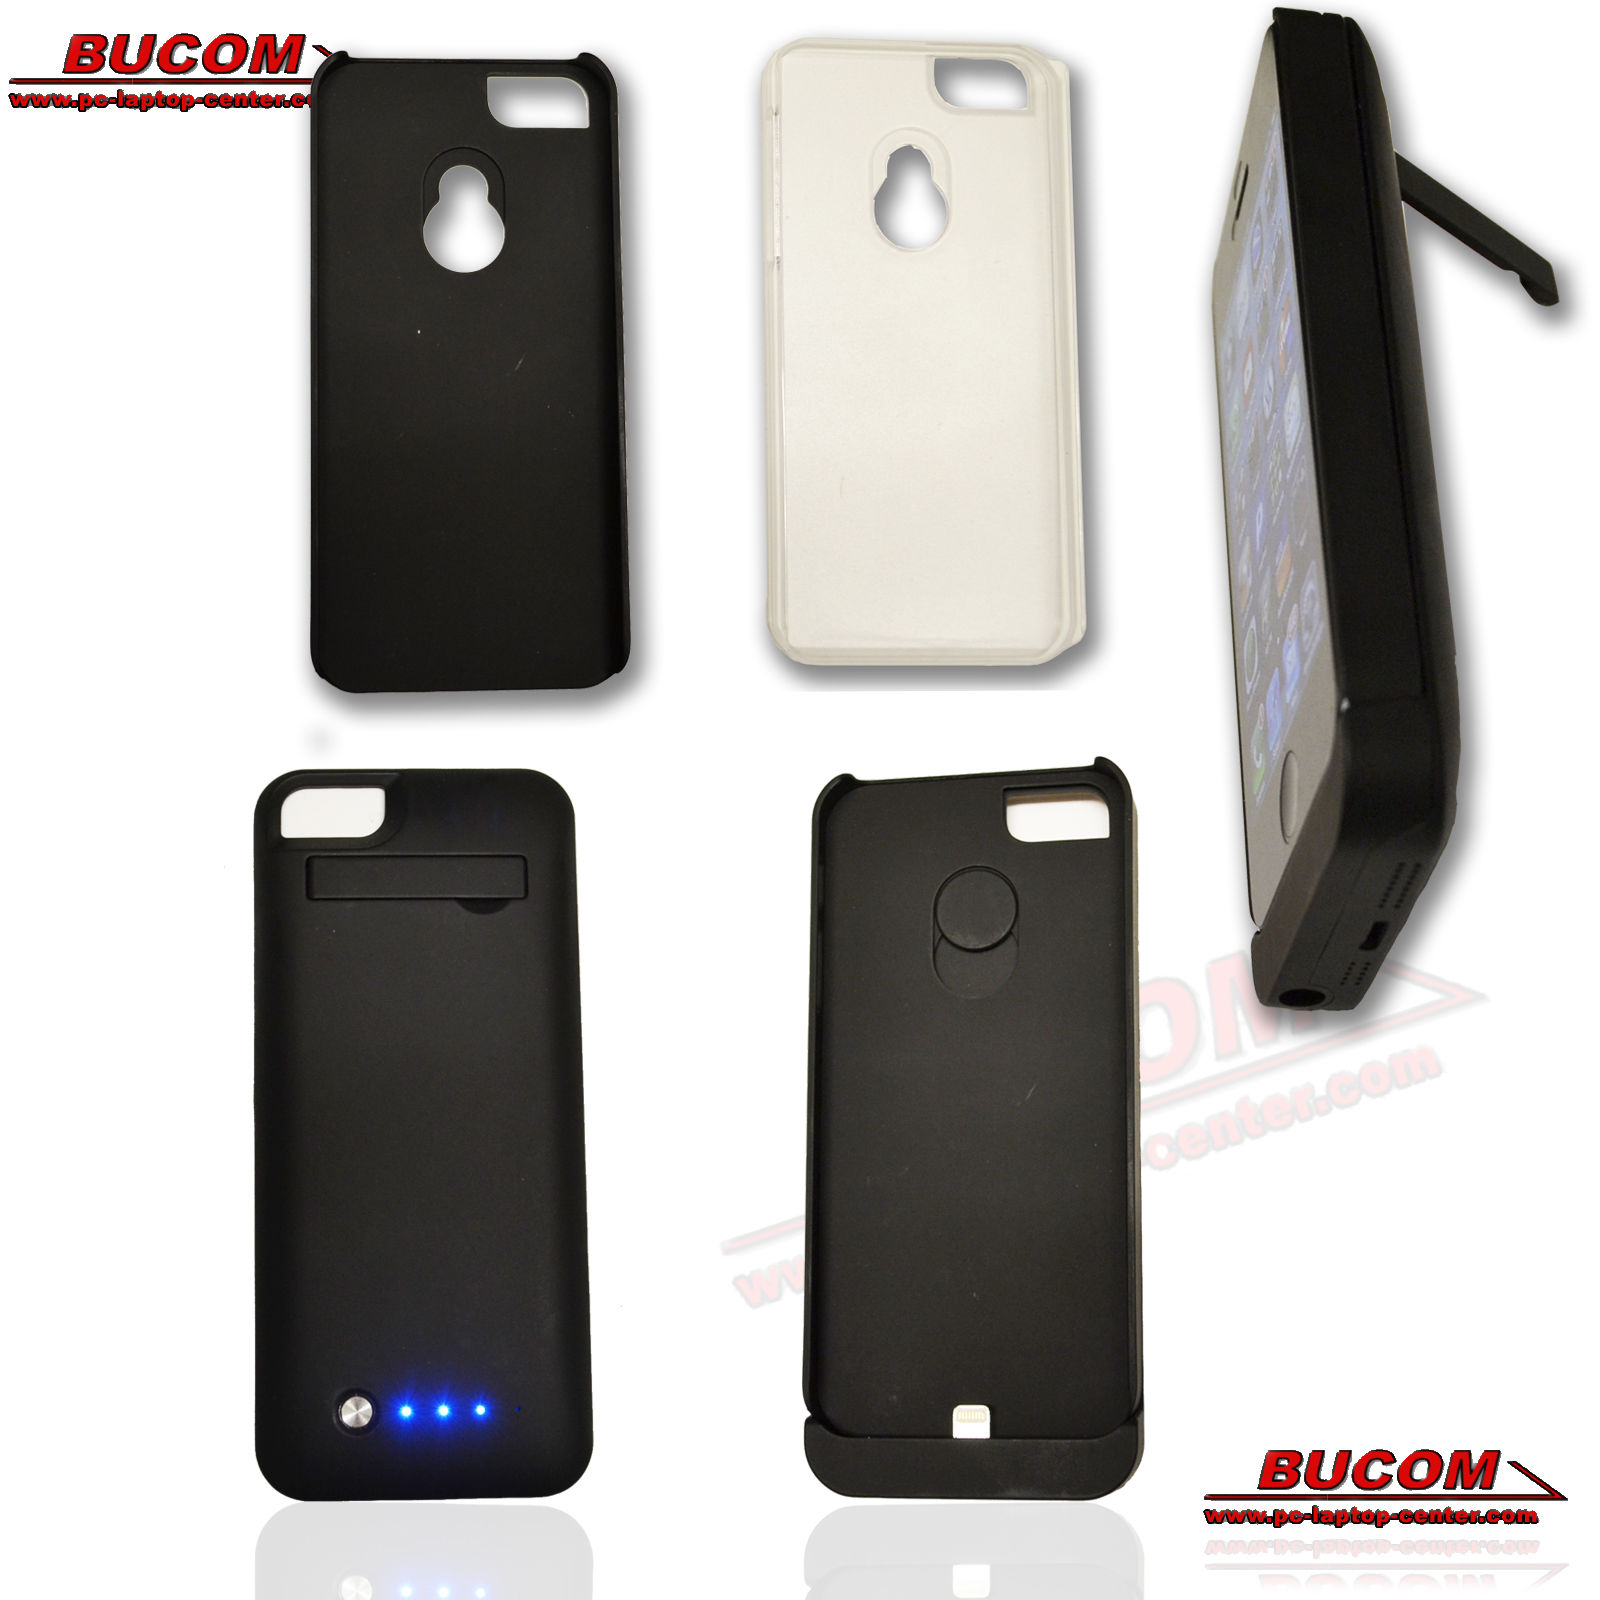 Pc Laptop Center Com Apple Iphone 4 Display Digitizer Touchsreen